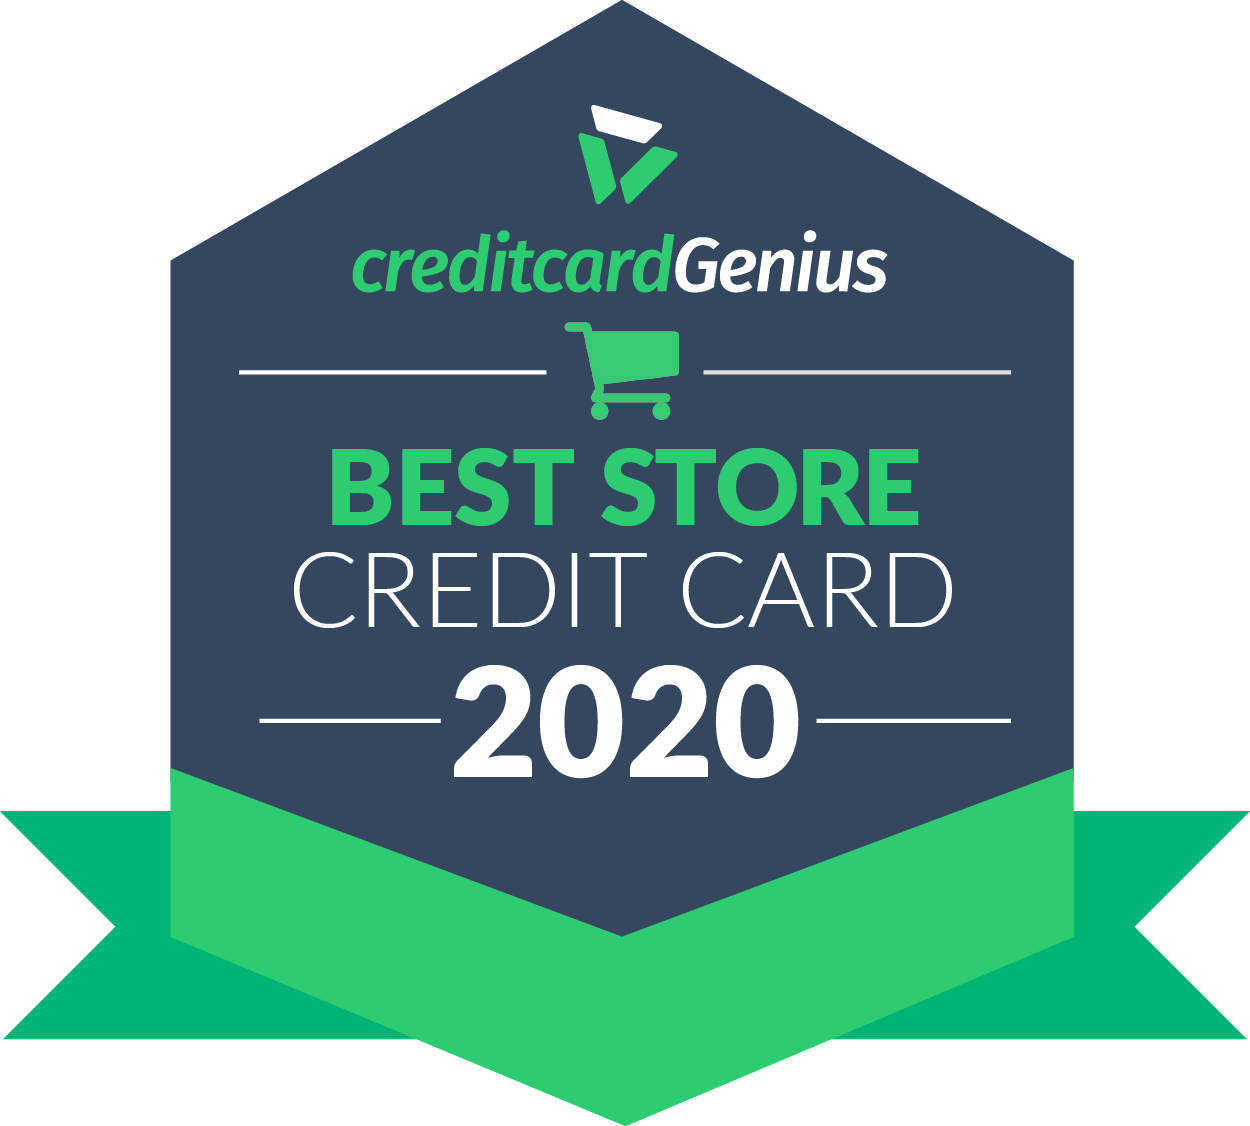 Winner of the 2020 CreditcardGenius Best Store Credit Card.